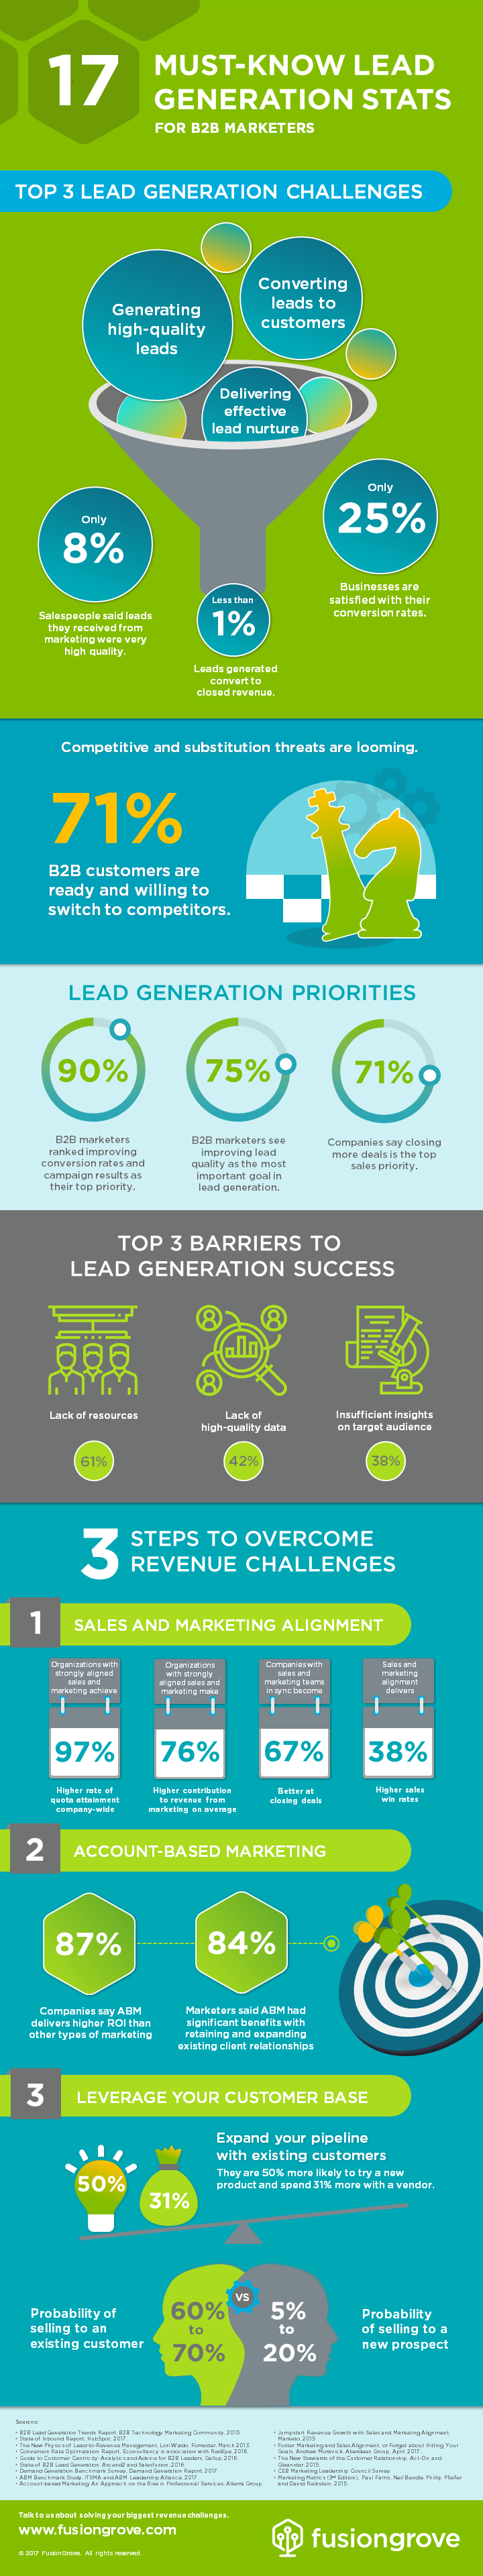 17 Must-Know Lead Generation Stats for B2B Marketers PNG Image